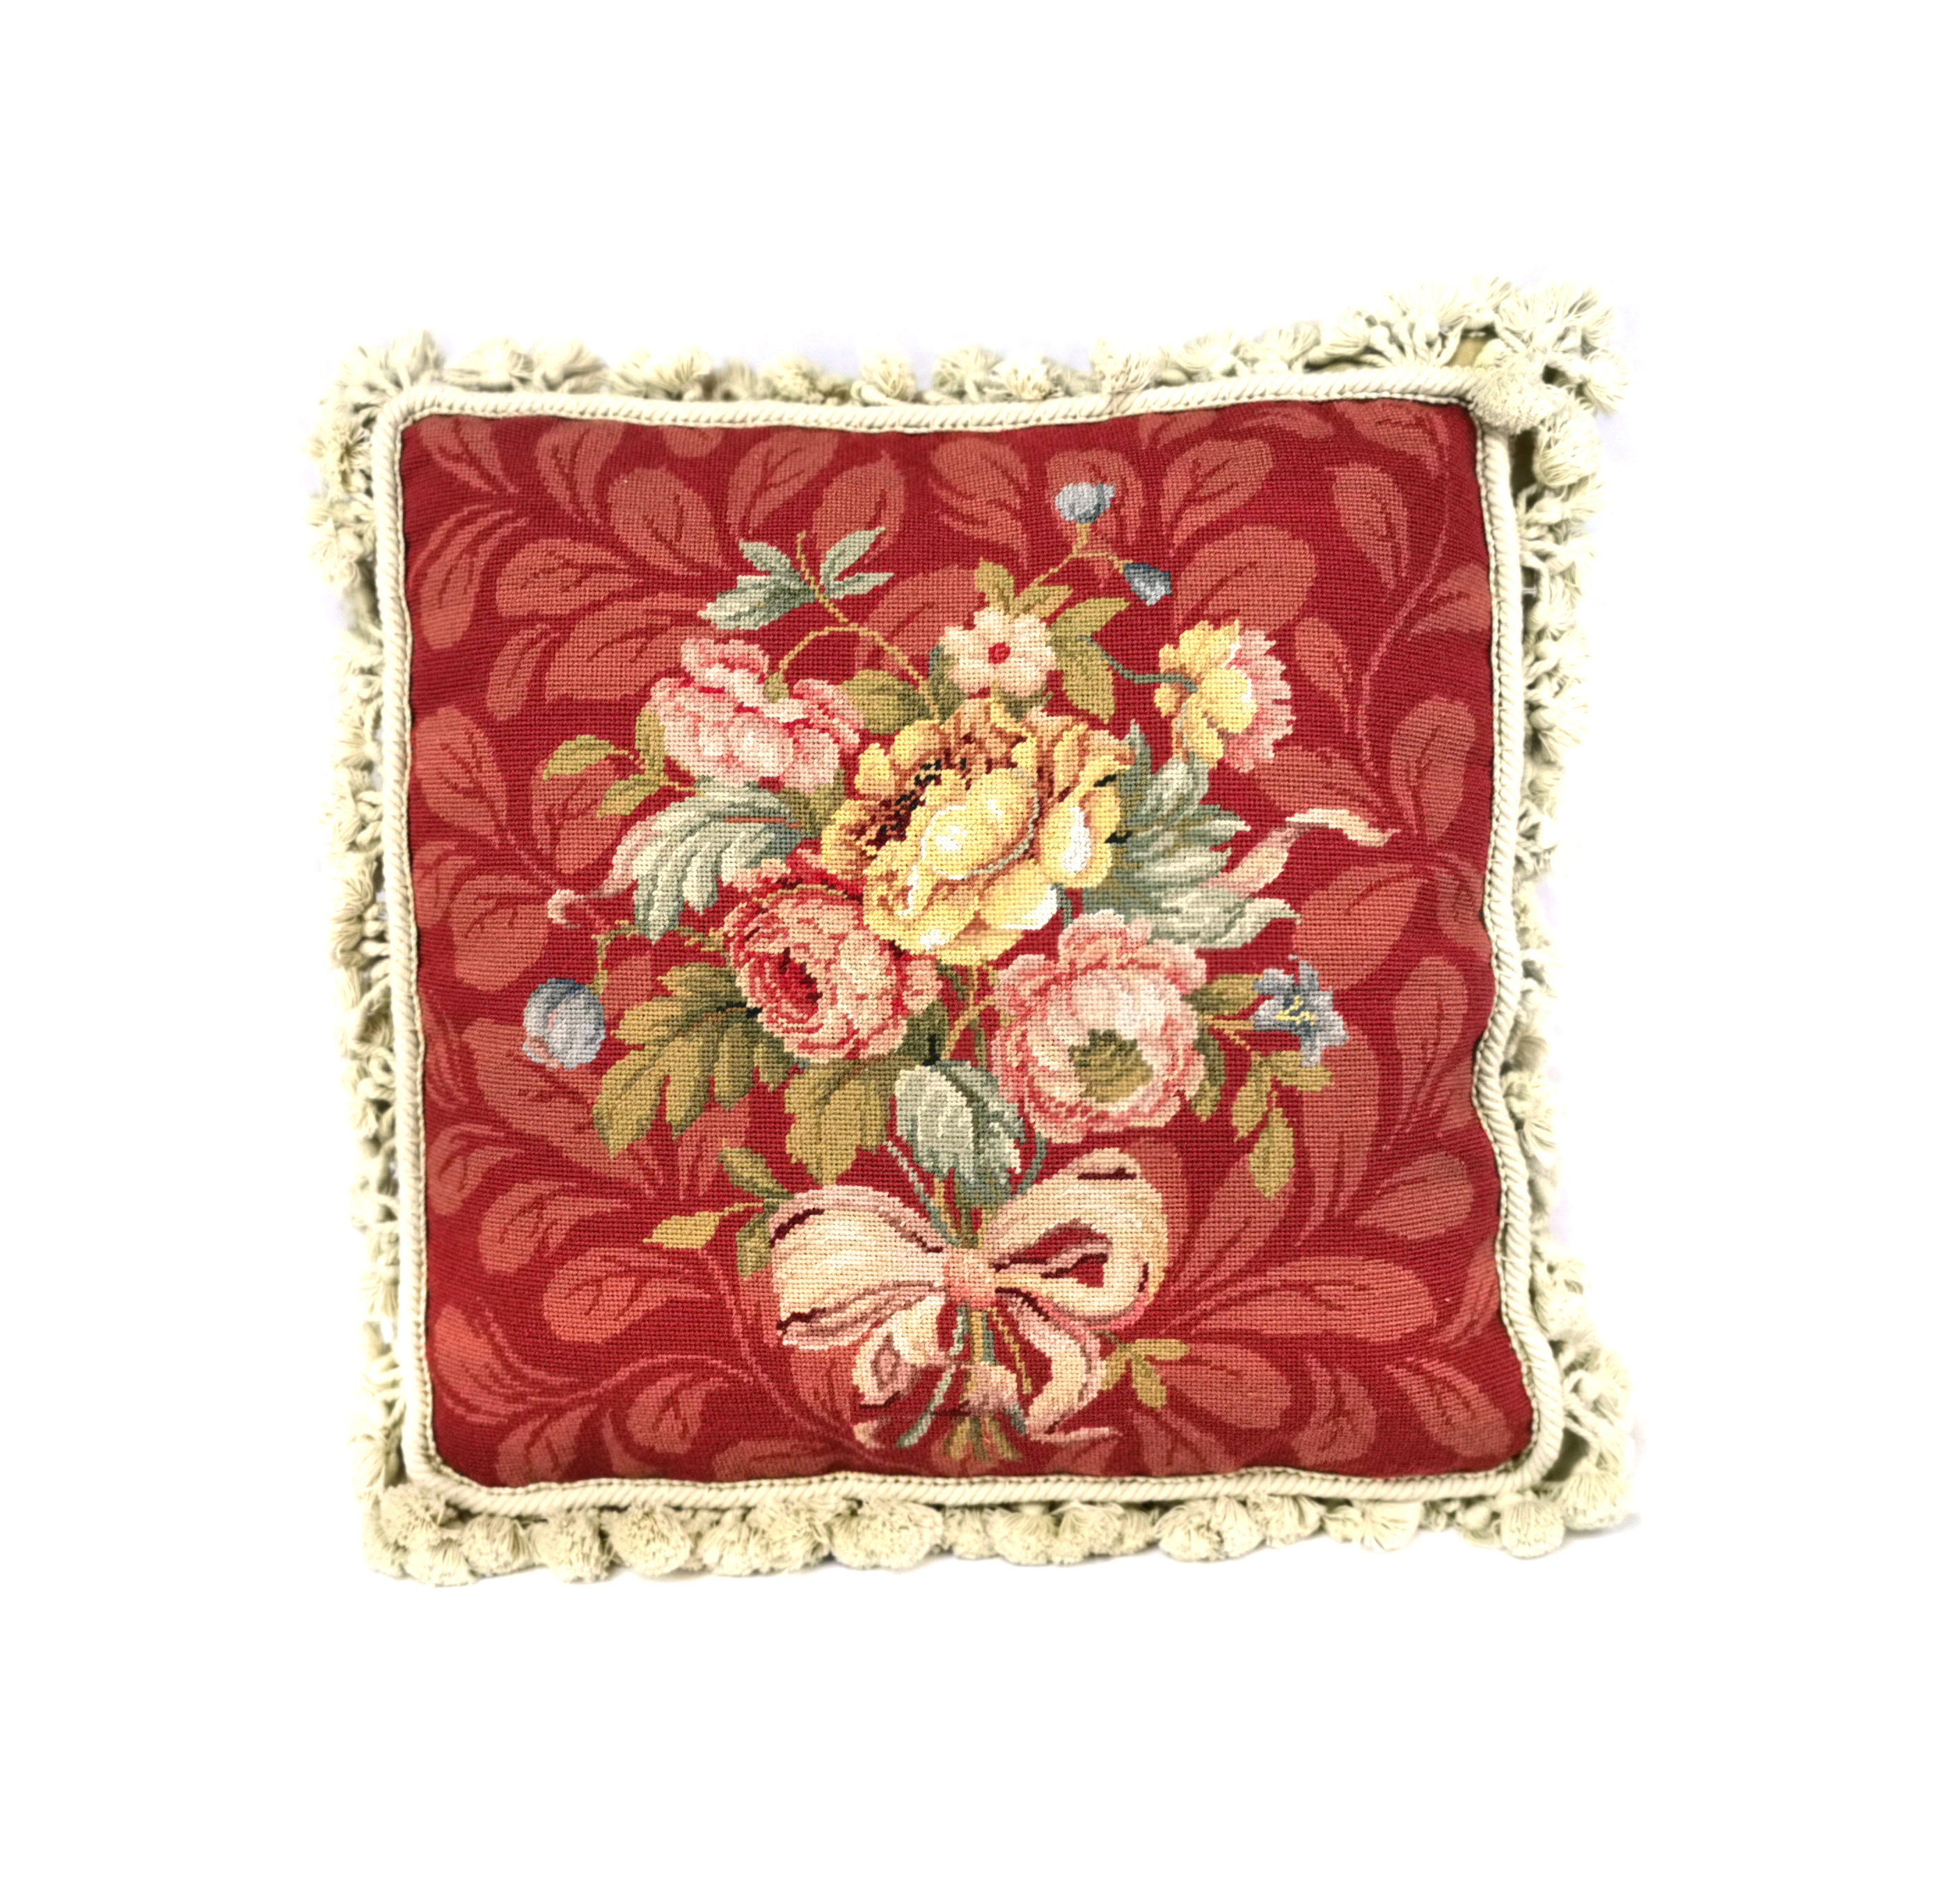 16″ x 16″ Handmade Wool Needlepoint Petit Point Bouquet of Roses with Ribbon Red Cushion Cover Pillow Case 12980888